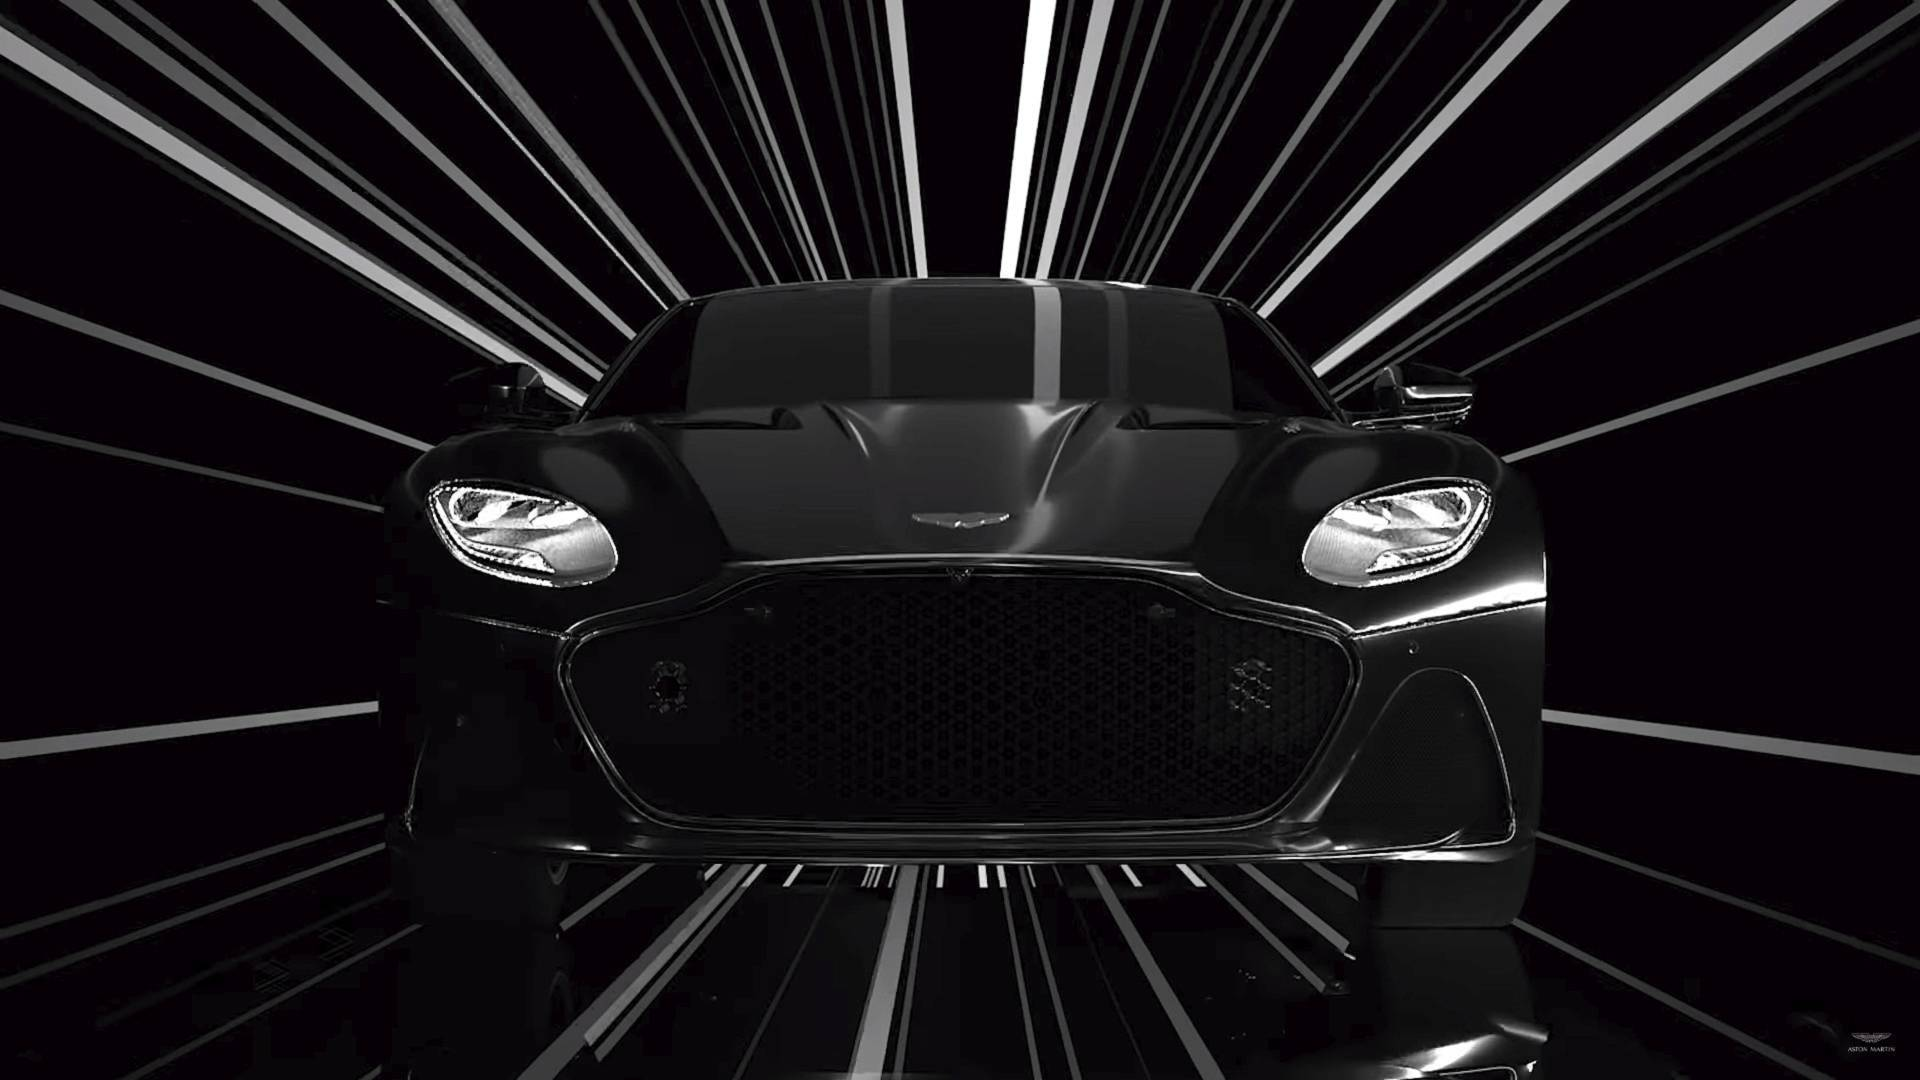 Aston Martin DBS Superleggera Makes An Artistic Film Bebut 1920x1080